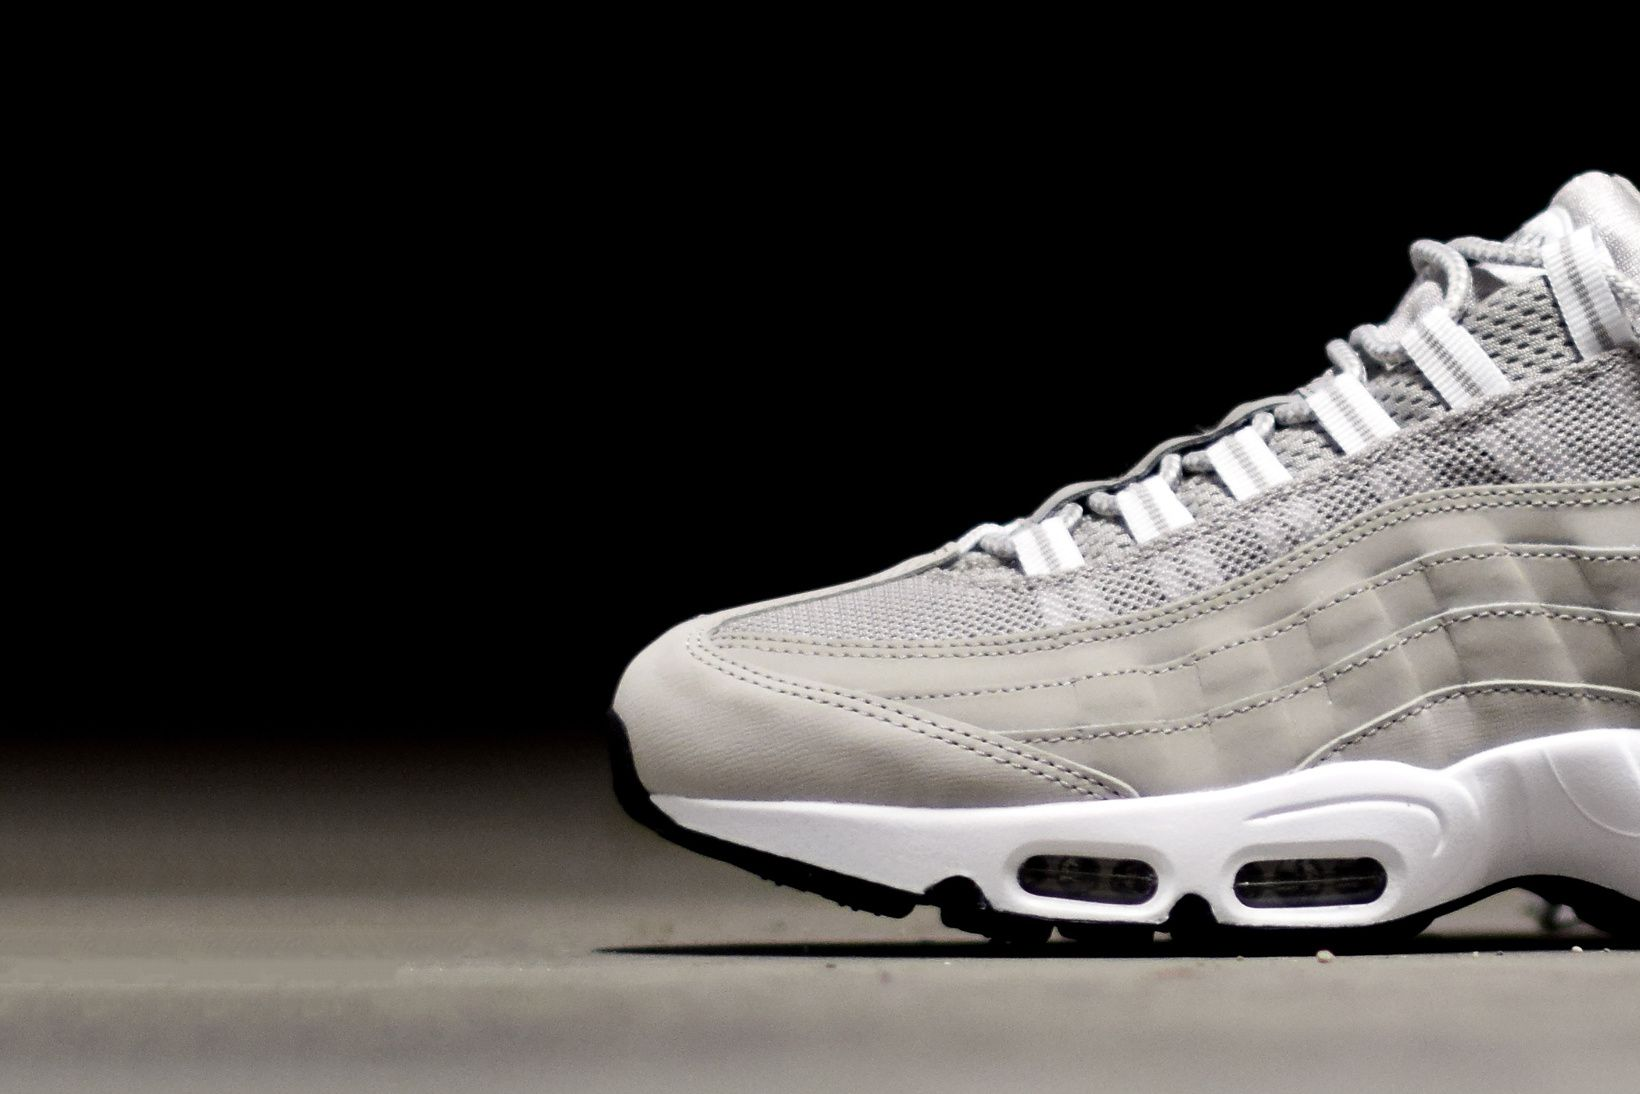 beauty new high sale retailer Nike Wraps the Iconic Air Max 95 Silhouette In